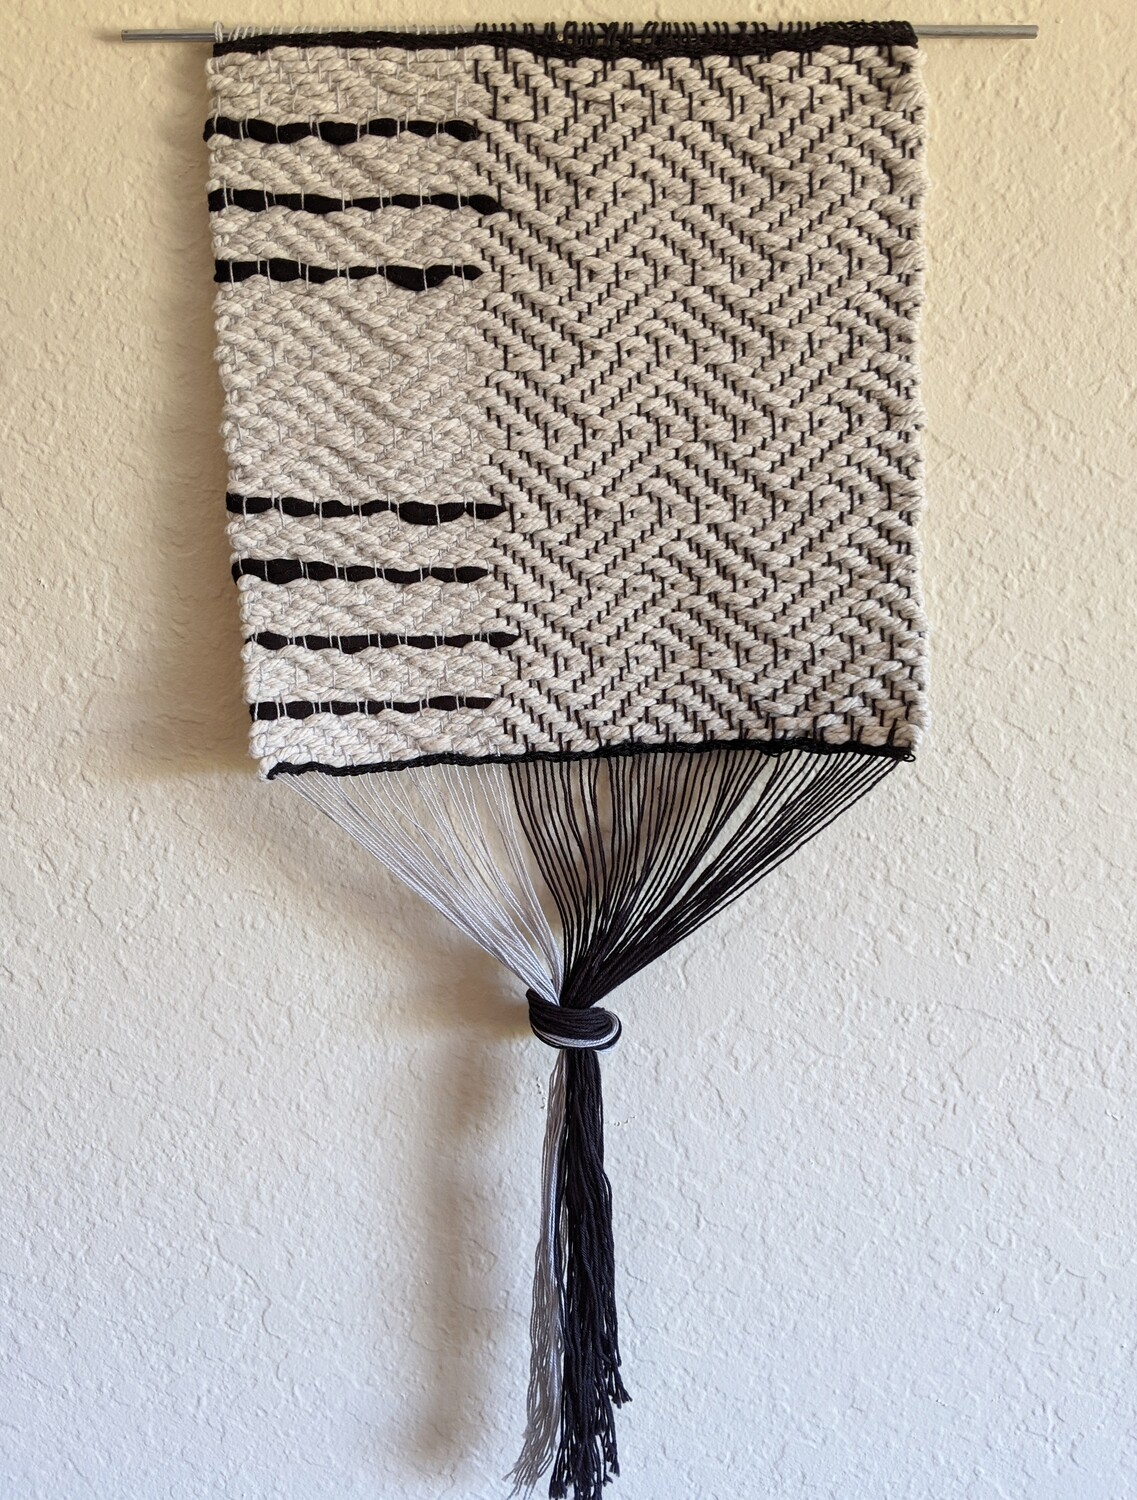 LESSONS COTTON WOVEN WALL HANGING